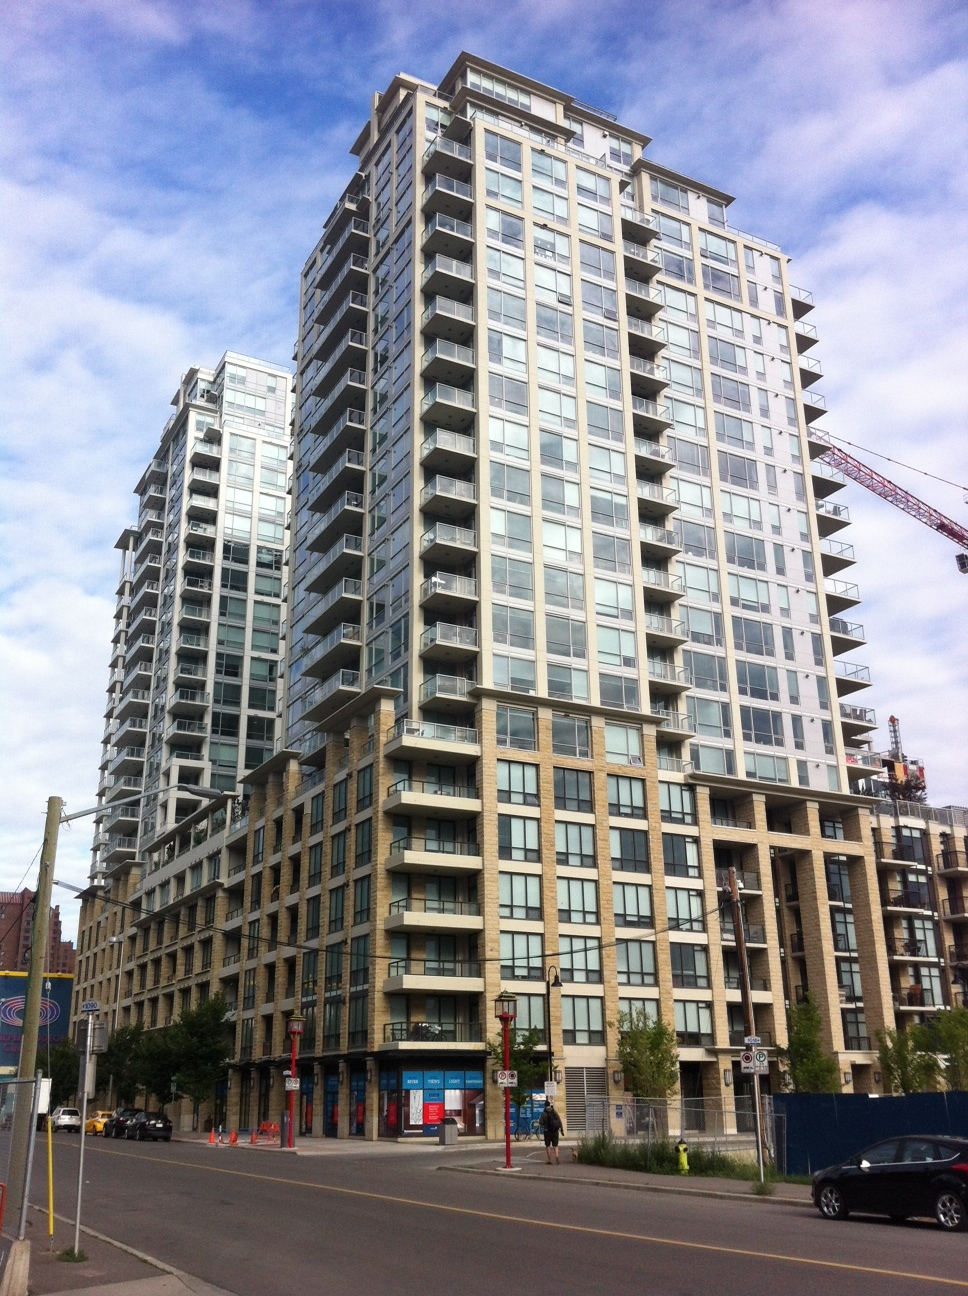 Waterfront project consists of five buildings with 1,000 condo units.